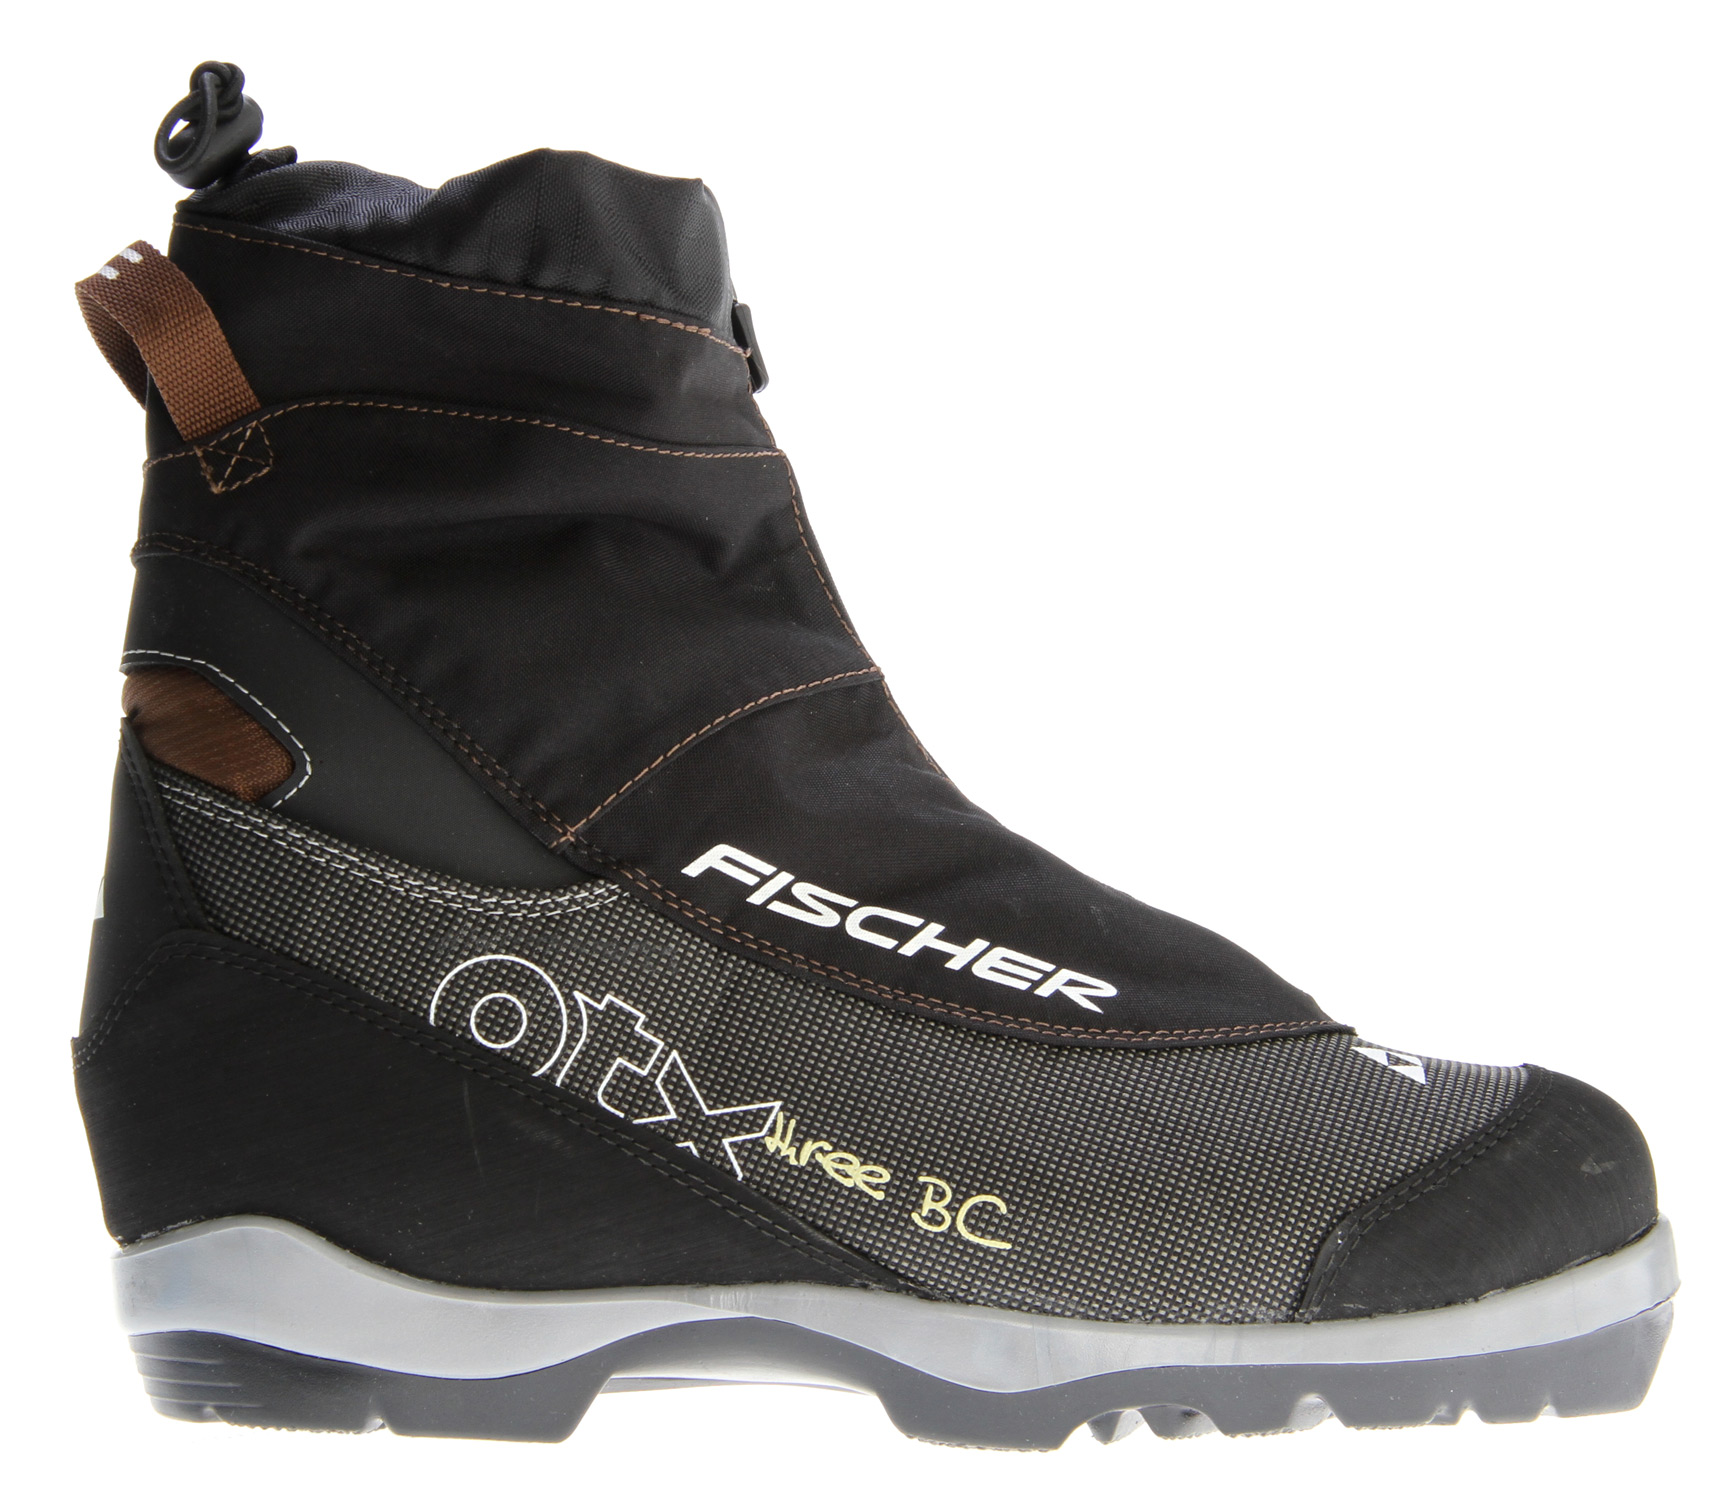 Ski This new boot opens up individual opportunities away from the tracks as well: with Integrated Gaiter, Sealed Zipper and Wool Lining, the Fischer Offtrack 3 BC Cross Country Ski Boot offers reliable protection against the snow and the cold. Easy Entry Loops make the boot easy to put on. T3 sole and hard-wearing nylon outer material with partial rubber sole edge round off the package.Key Features of the Fischer Offtrack 3 BC Cross Country Ski Boots: Sole: T3/BC Bootflex: Soft Sport Fit Concept Twin Skin Concept Easy Entry Loops Integrated Gaiter Sealed Zipper Wool Lining - $95.95